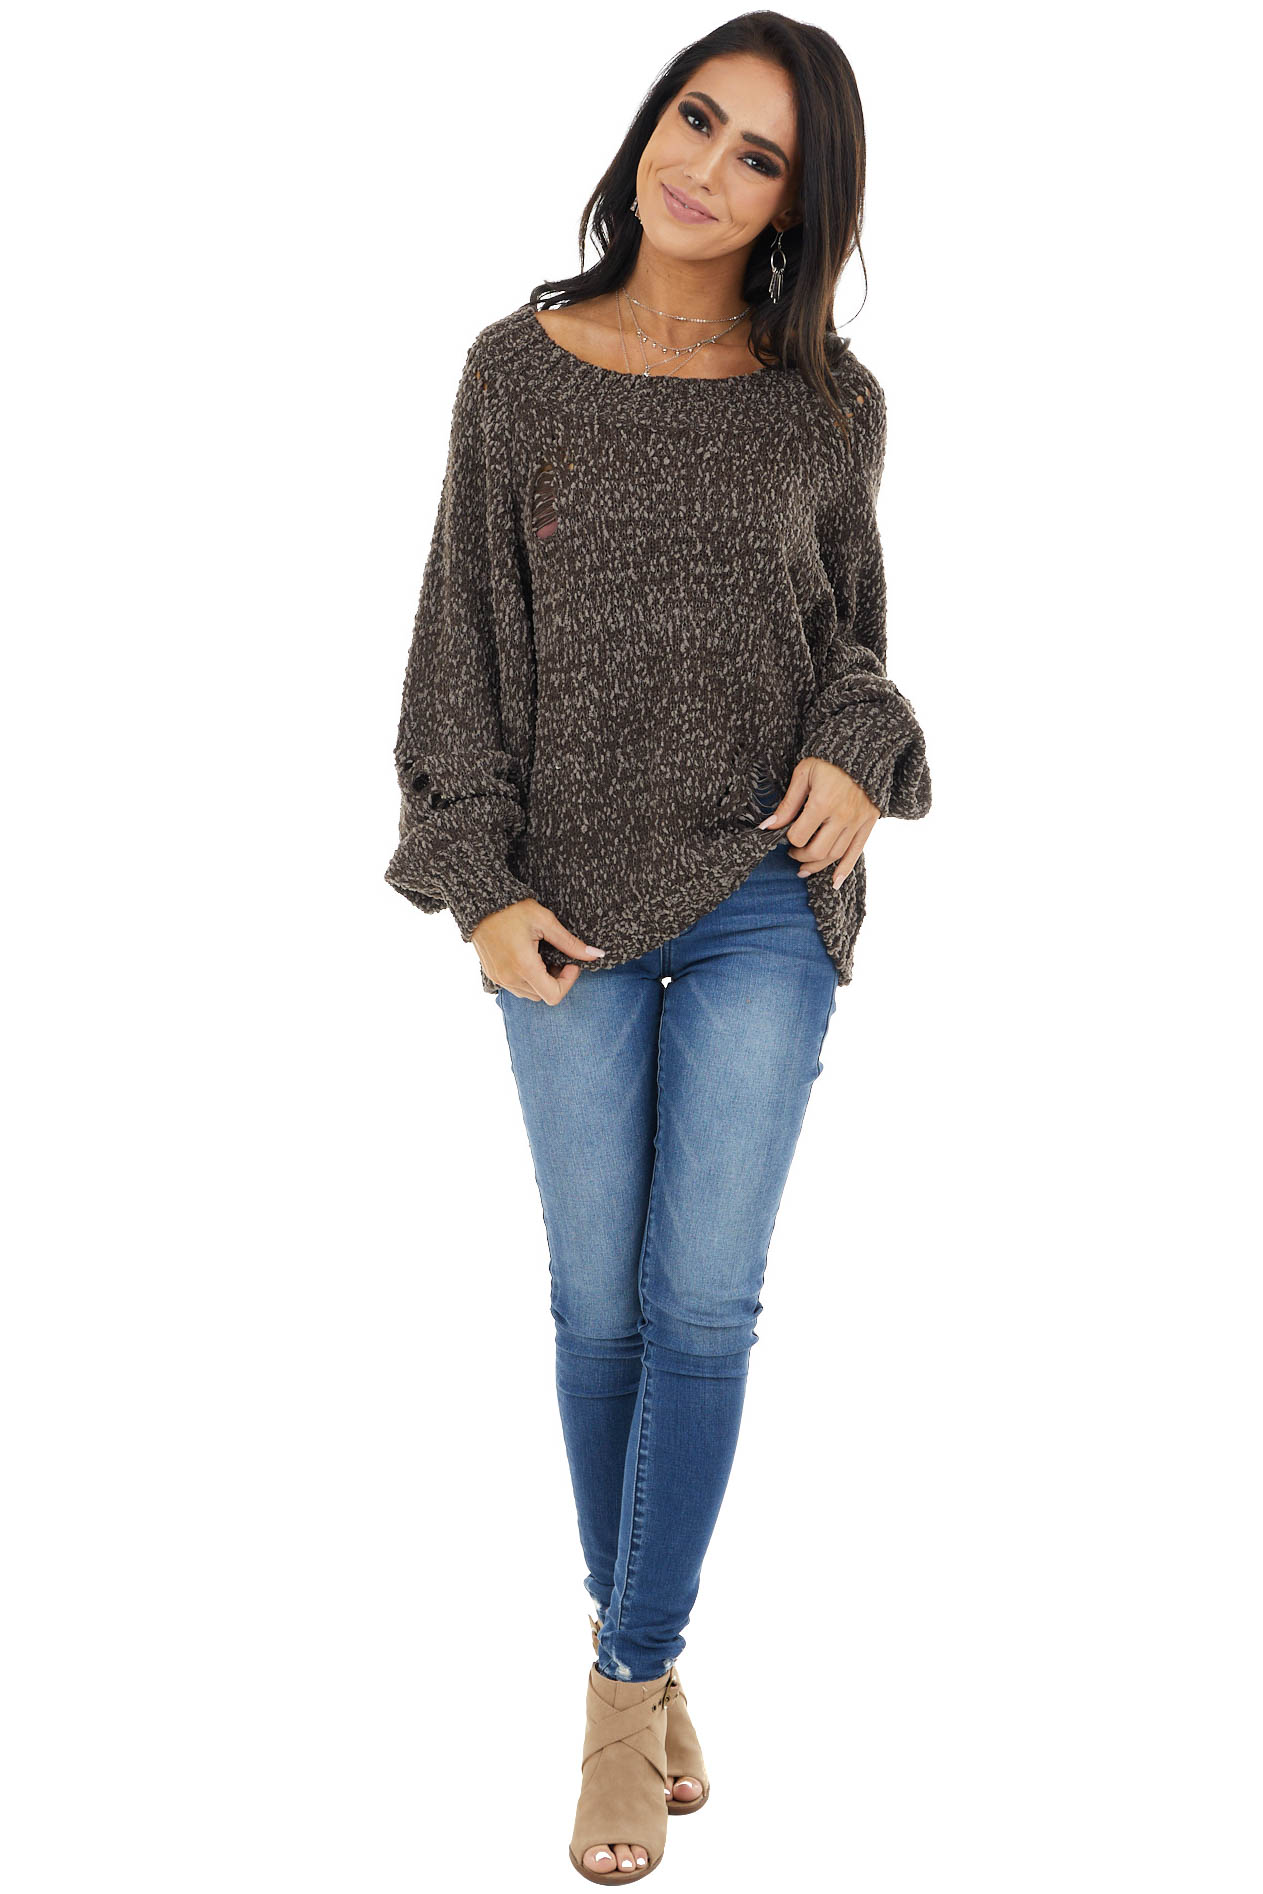 Coffee Sweater with Distressed Details and Bubble Sleeves